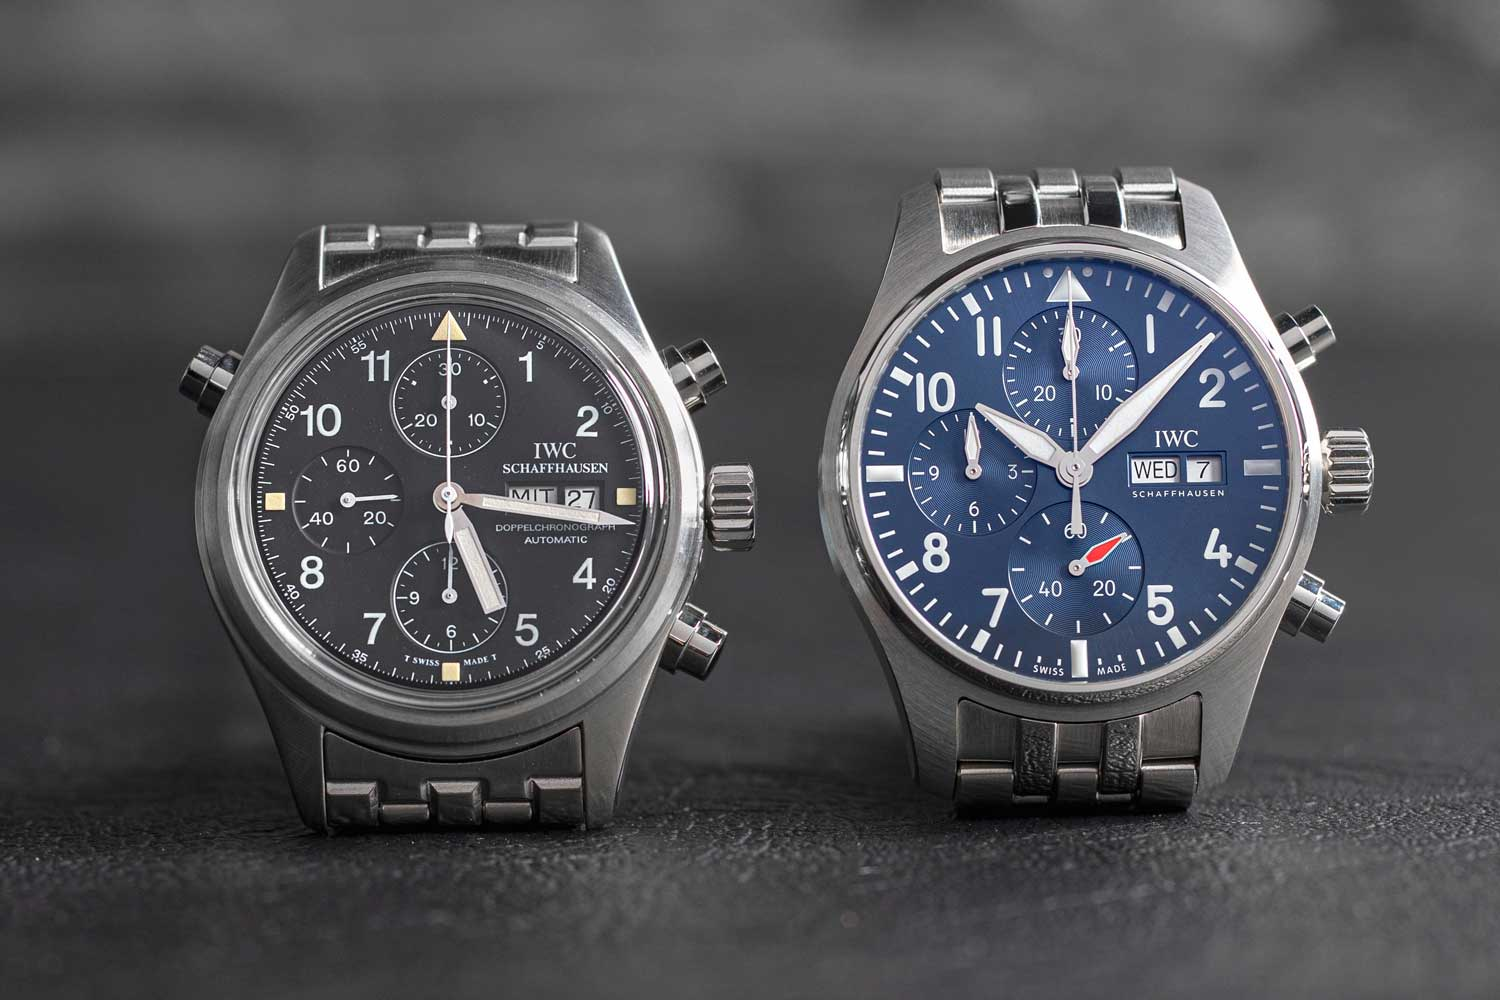 Powered by calibre 69385, the new Pilot's Watch Chronograph is paired with a coordinating blue (for the blue dial) or brown (for the green dial) calfskin strap or a stainless-steel bracelet(Image: Revolution)